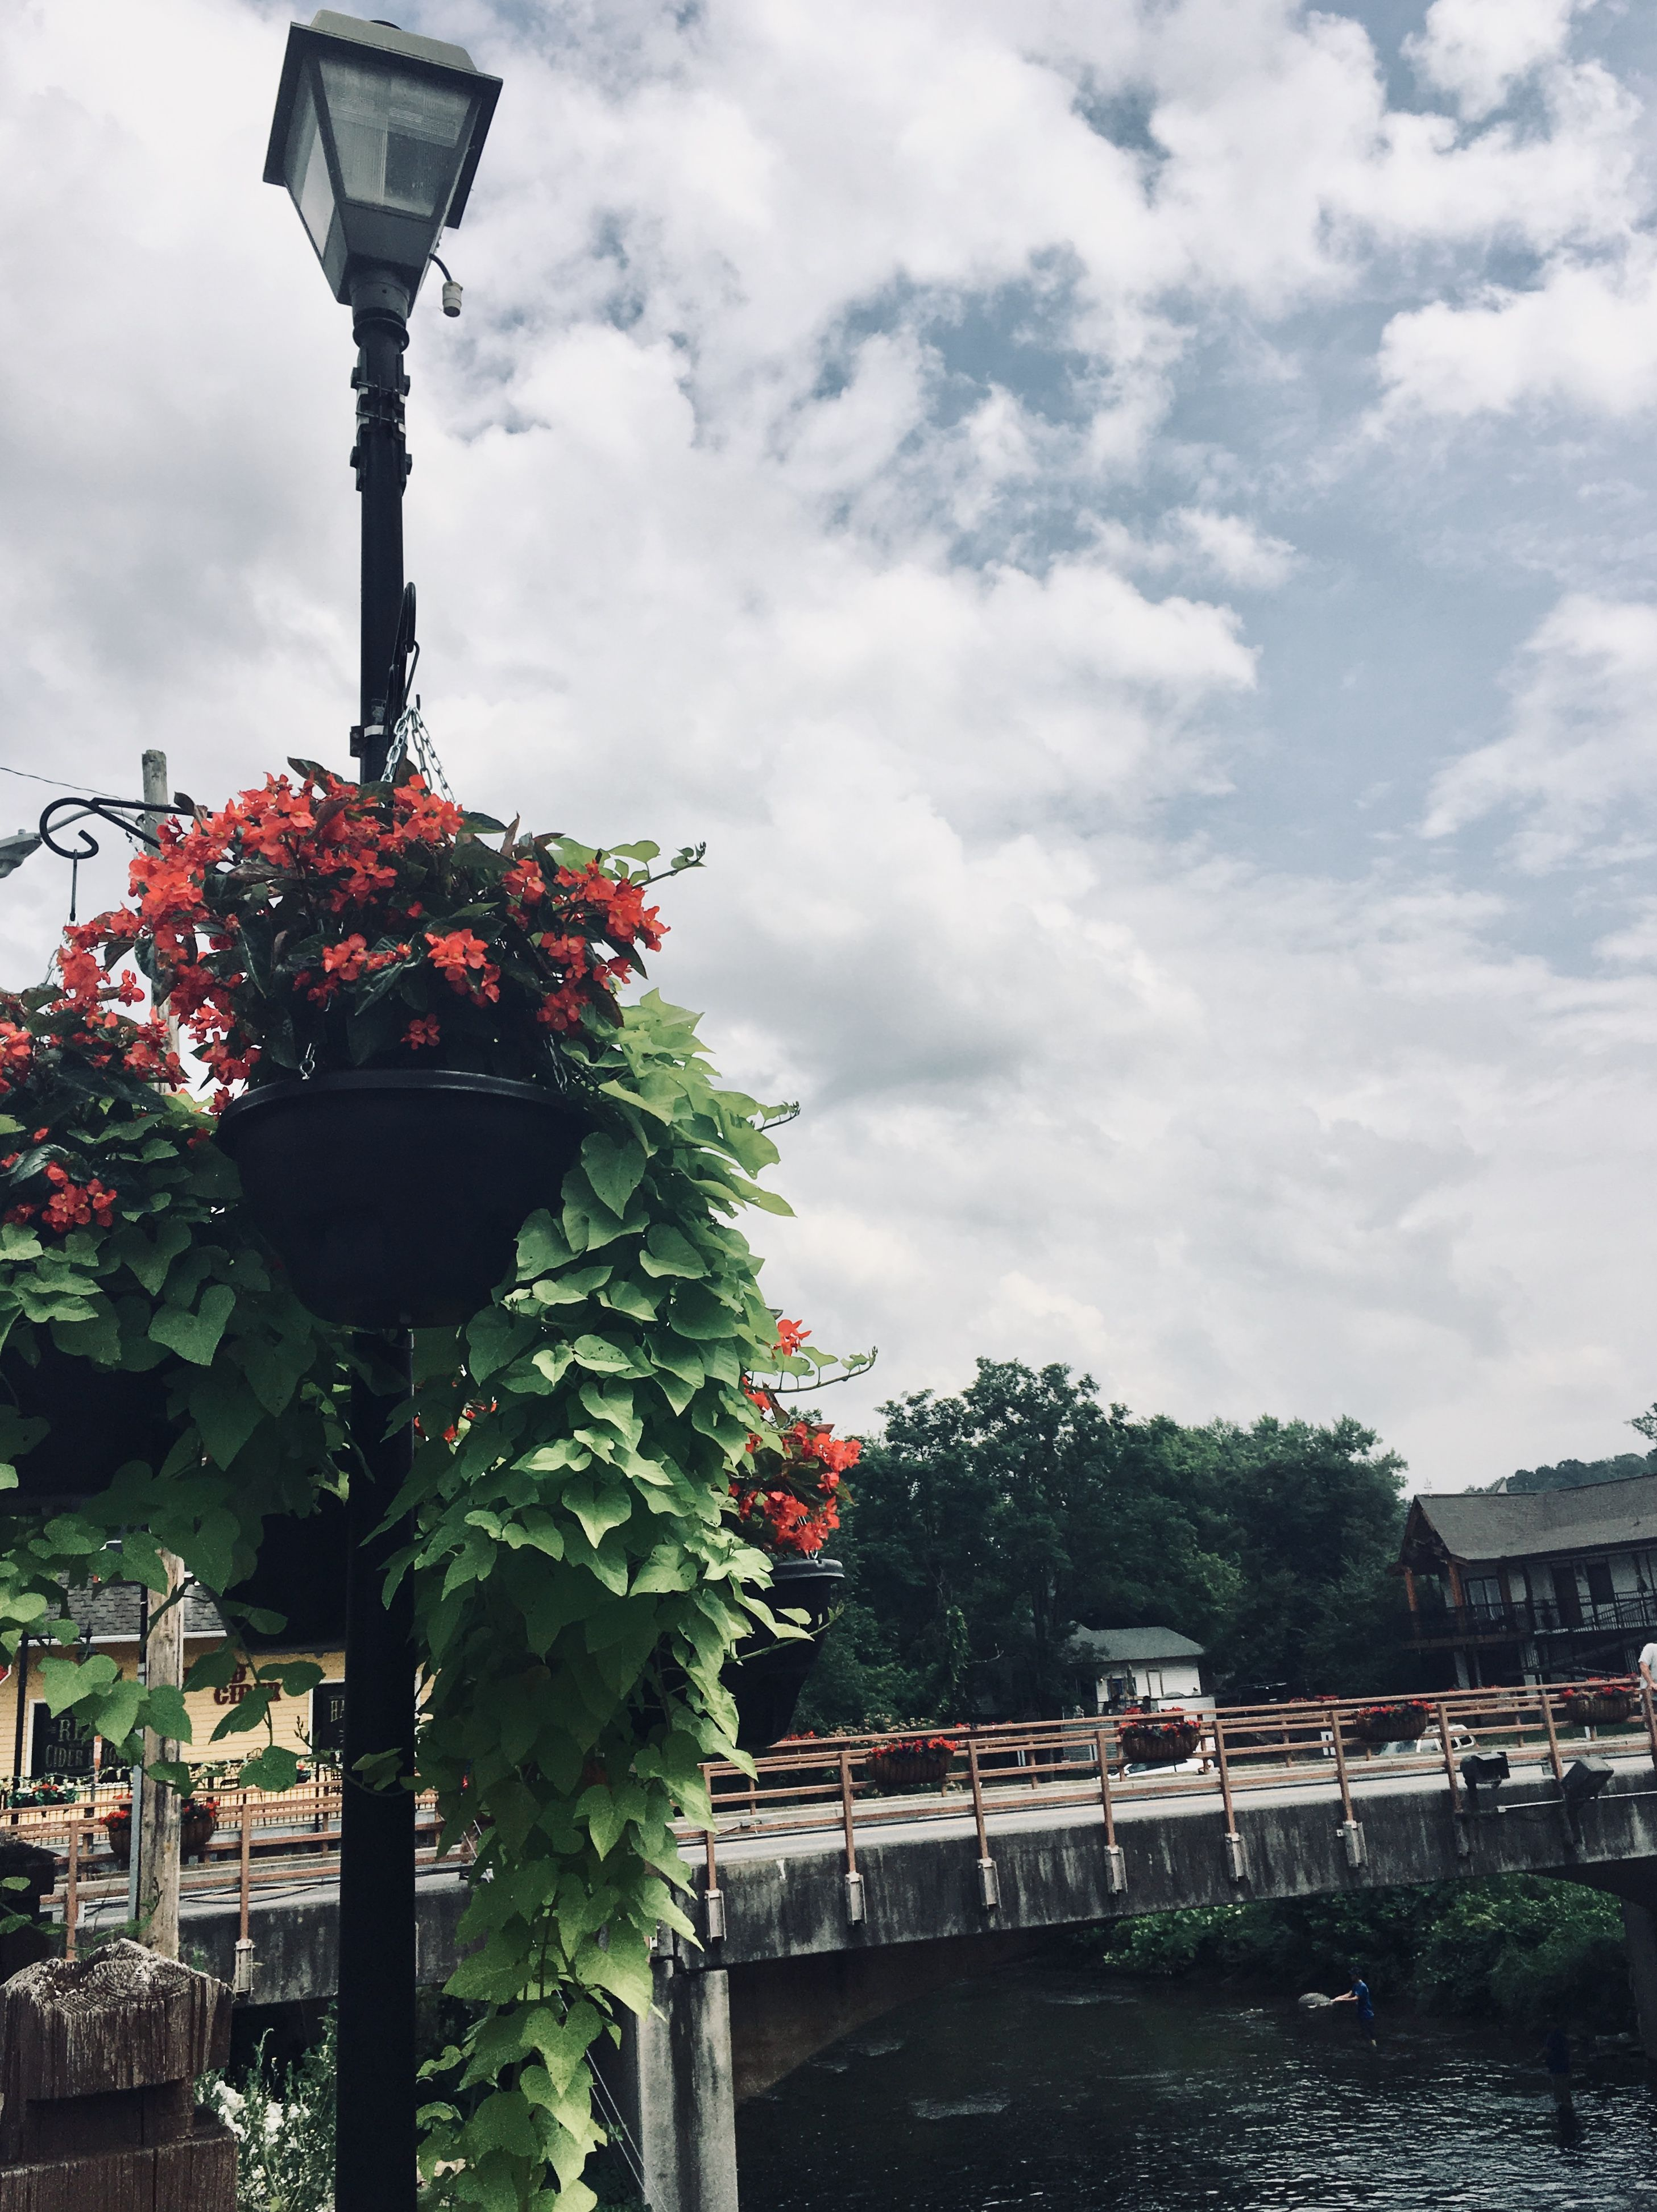 The Island Pigeon Forge Tennessee The Mill Downtown Phone Background Flowers Bridge Lamppost Light Bouquet Floral Pink Green Blue Skies